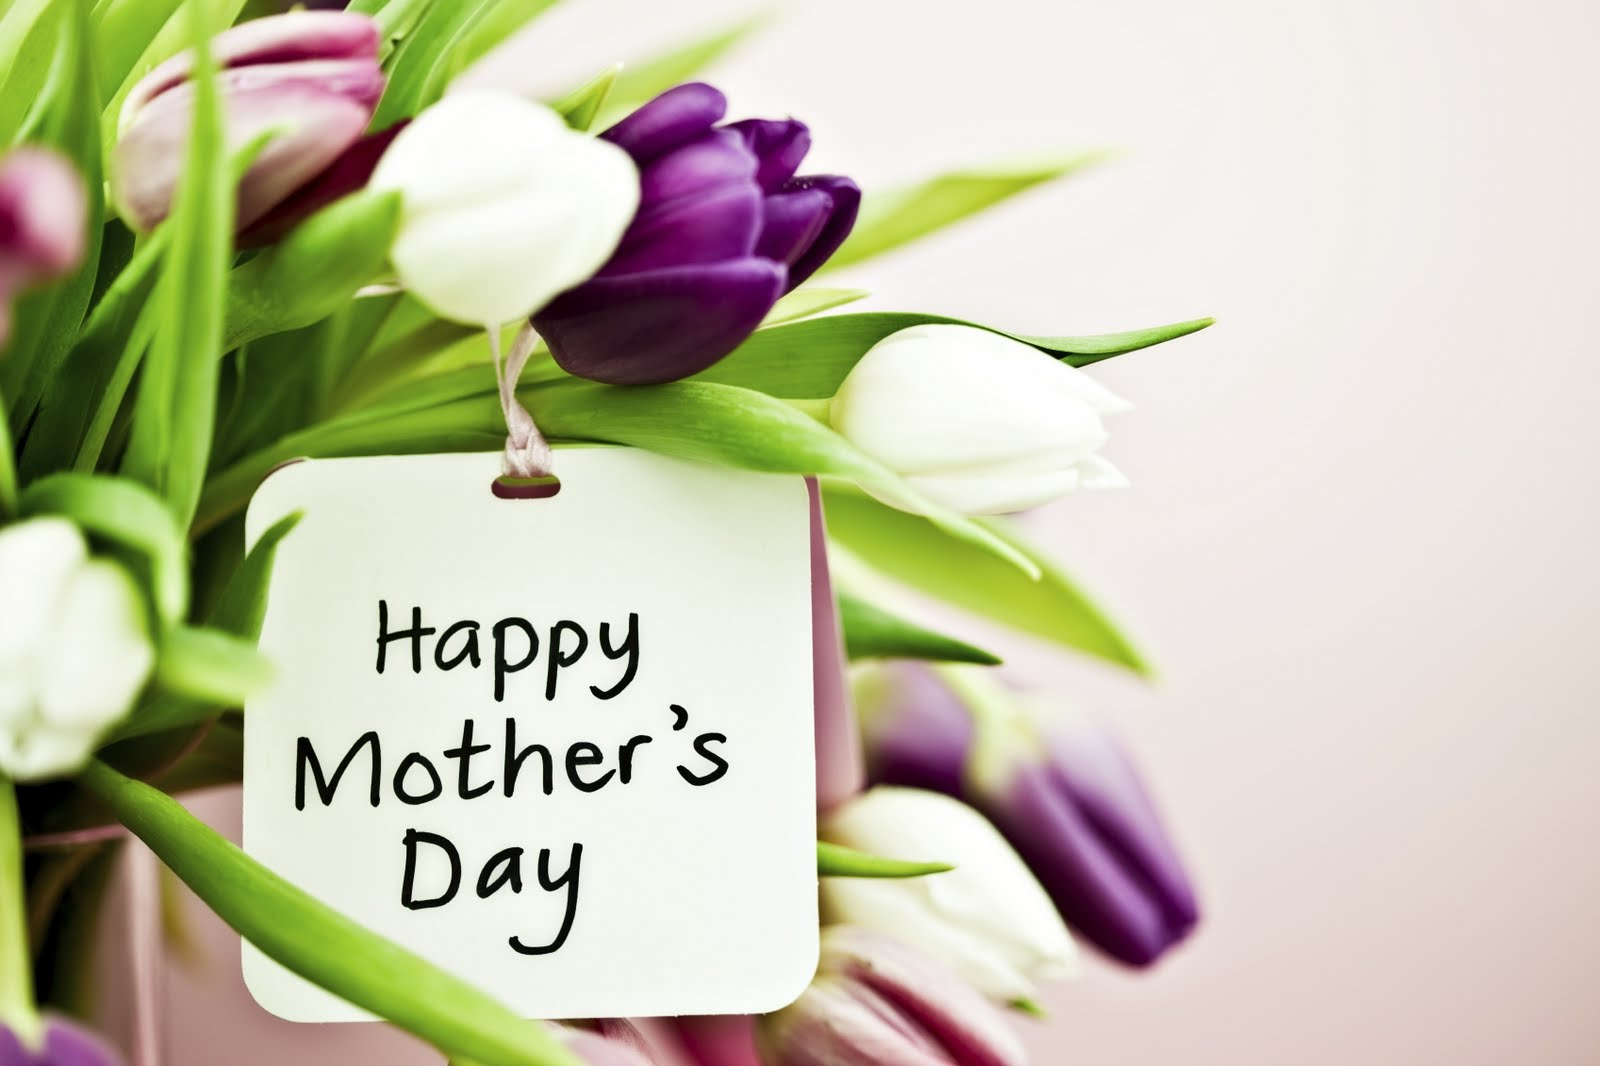 http://weneedfun.com/happy-mothers-day-international-mother-day/